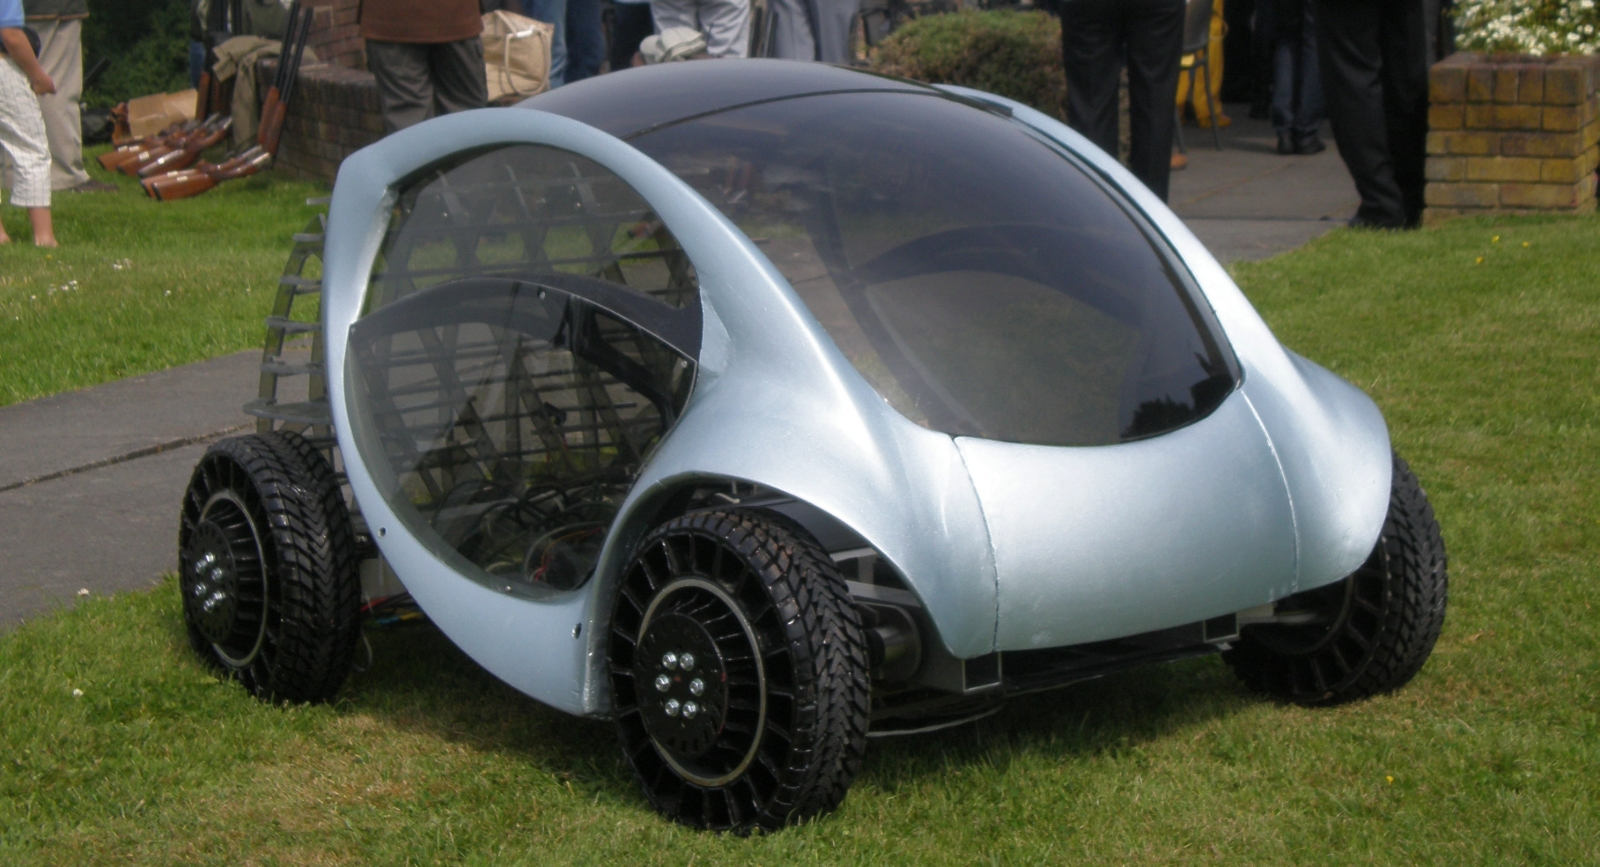 Meet Hiriko, The Foldable Two-seater Electric City Car